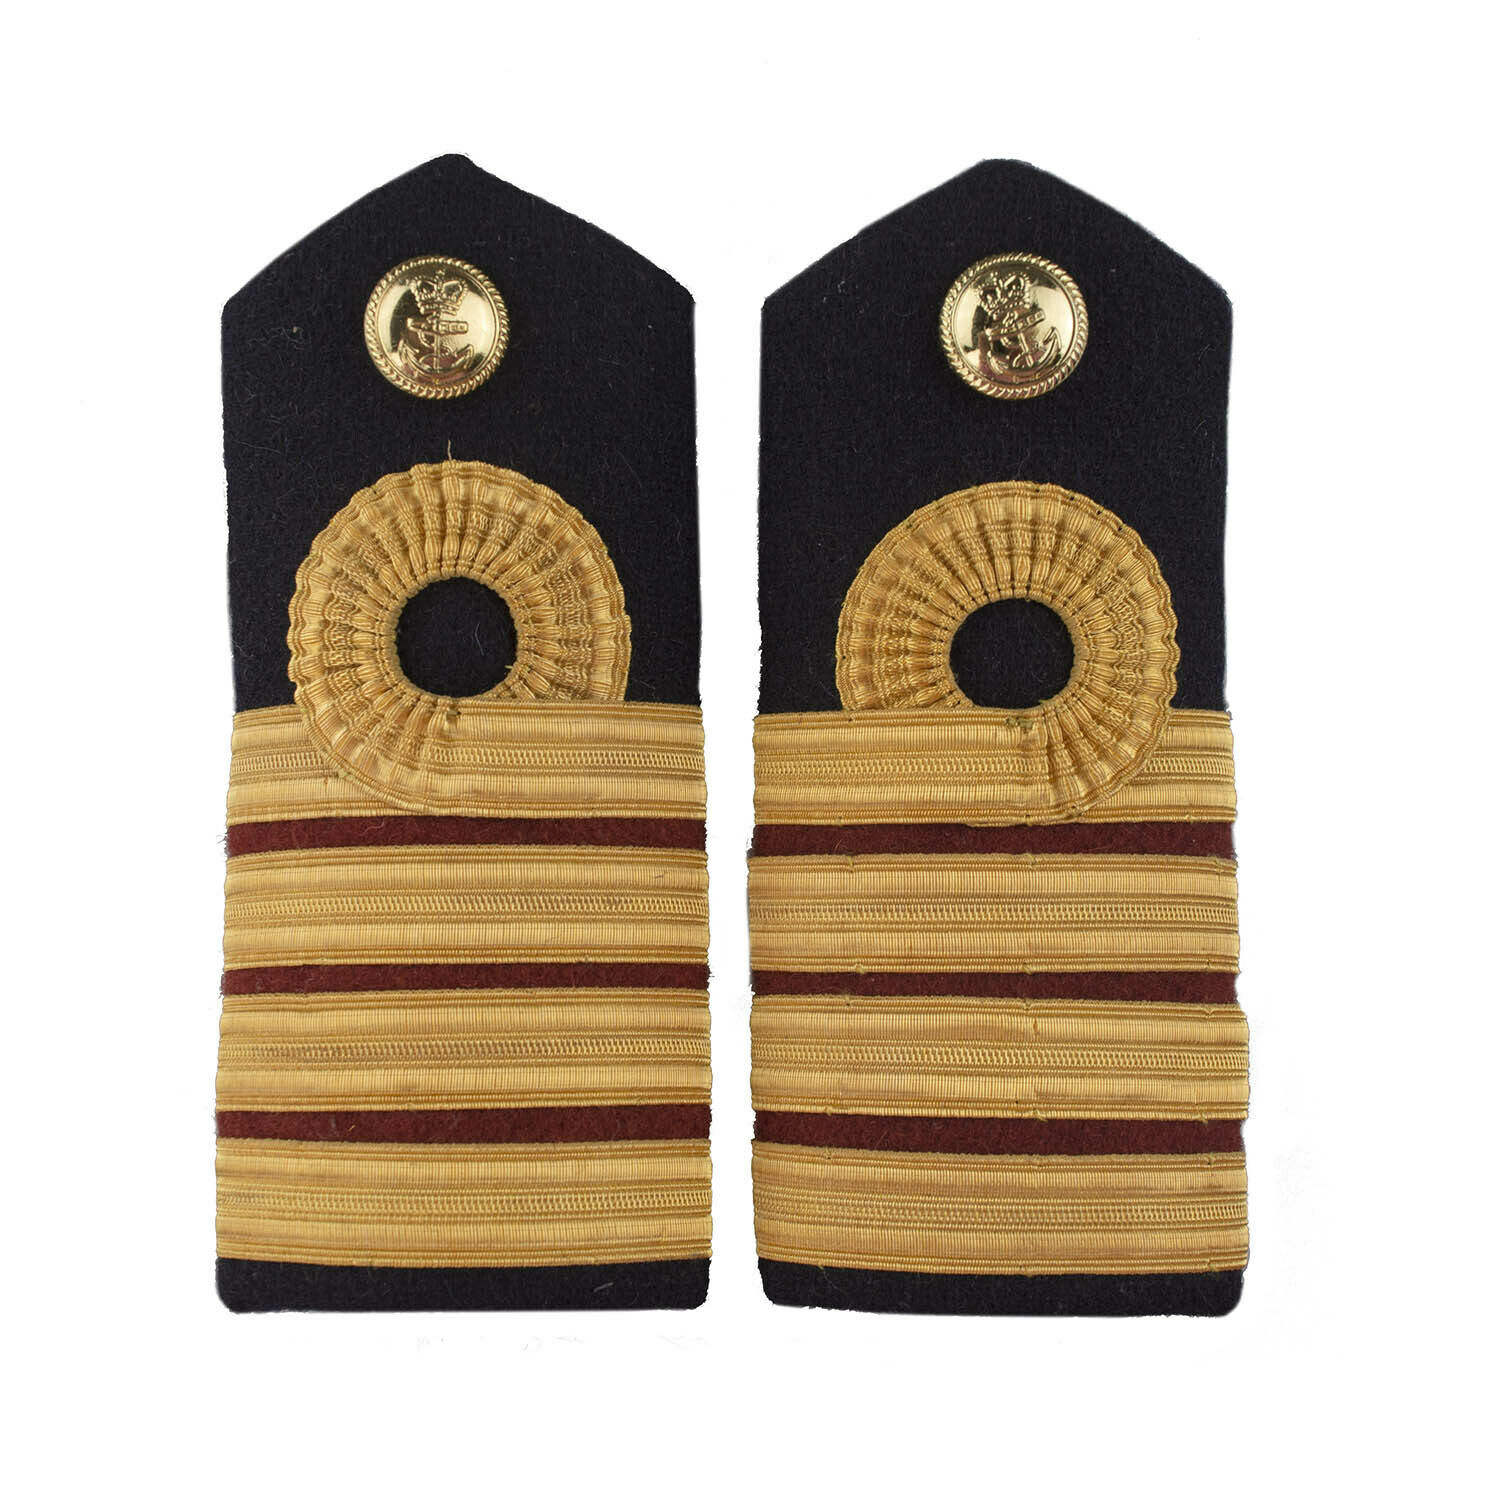 Chirurgo Capitano (<span class=keywords><strong>D</strong></span>) Bordo di Spalla Spallina Royal Ufficiali <span class=keywords><strong>Distintivo</strong></span> Bordo di Spalla Spallina Royal Air Force <span class=keywords><strong>Distintivo</strong></span>